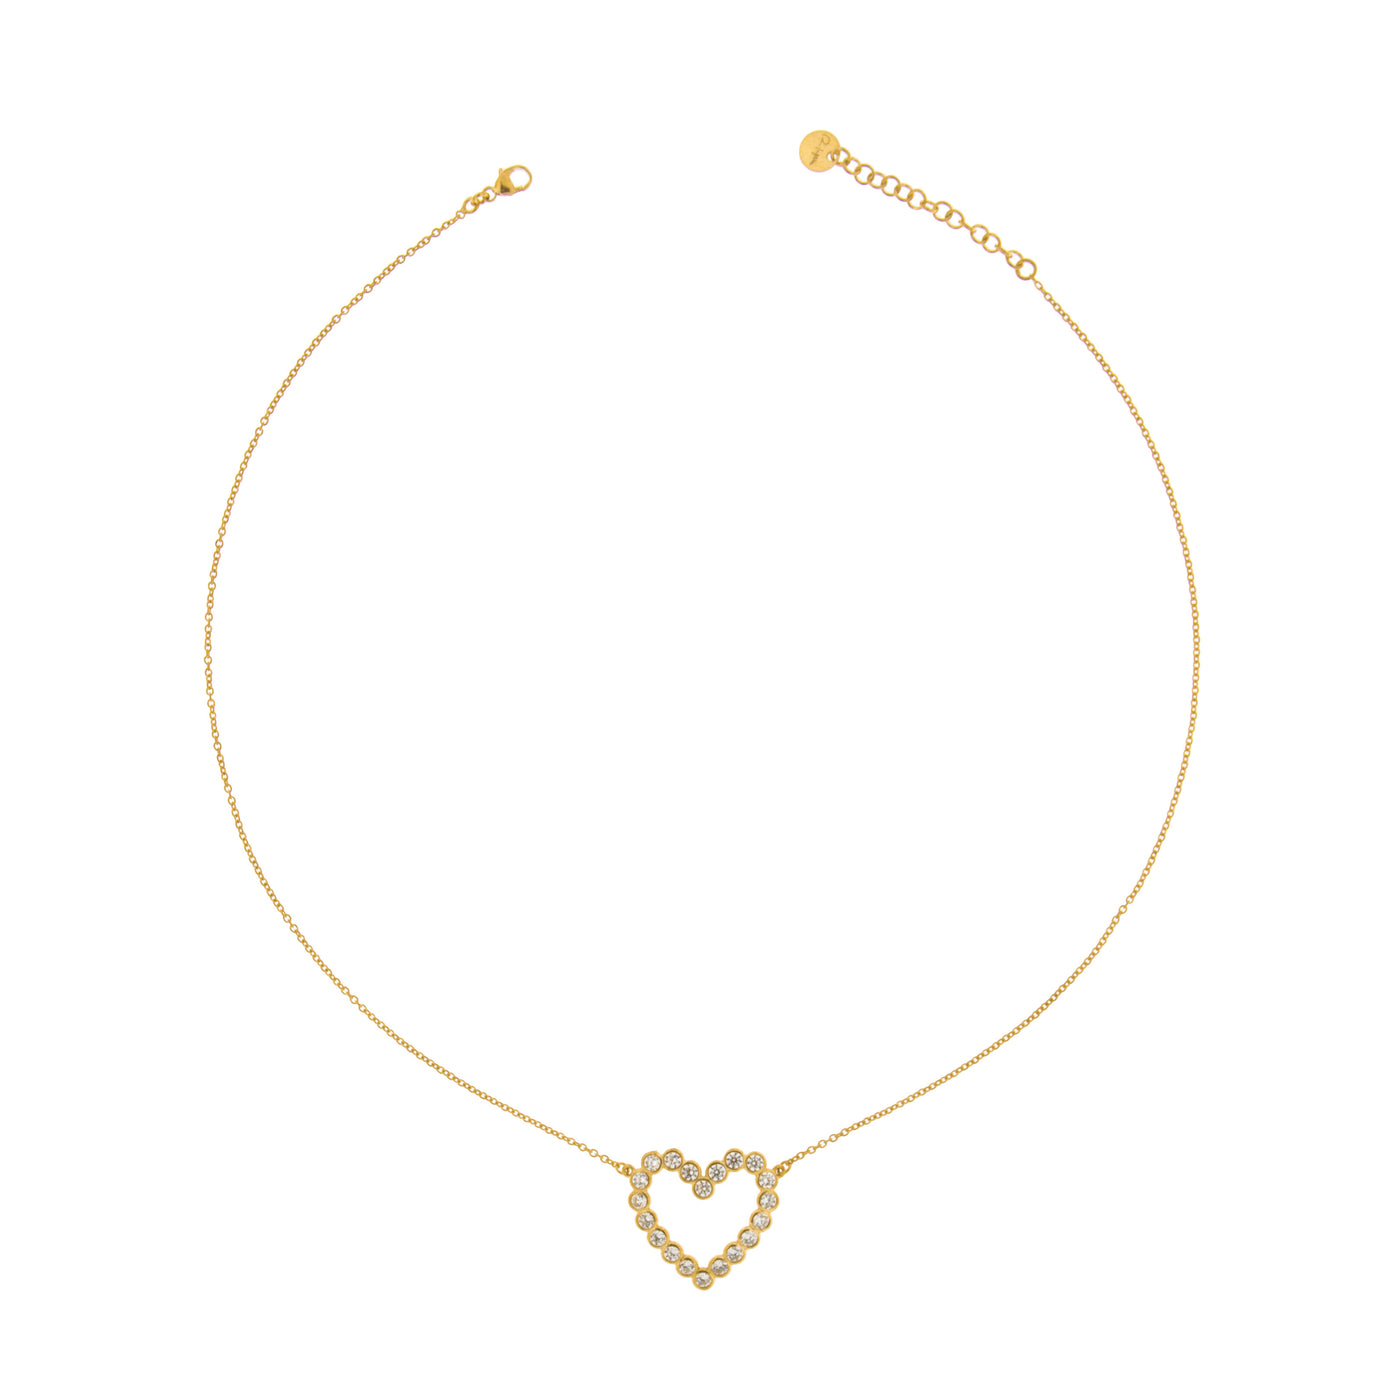 Chokers - Chain Choker with Zircons - Heart - 2 | Rue des Mille